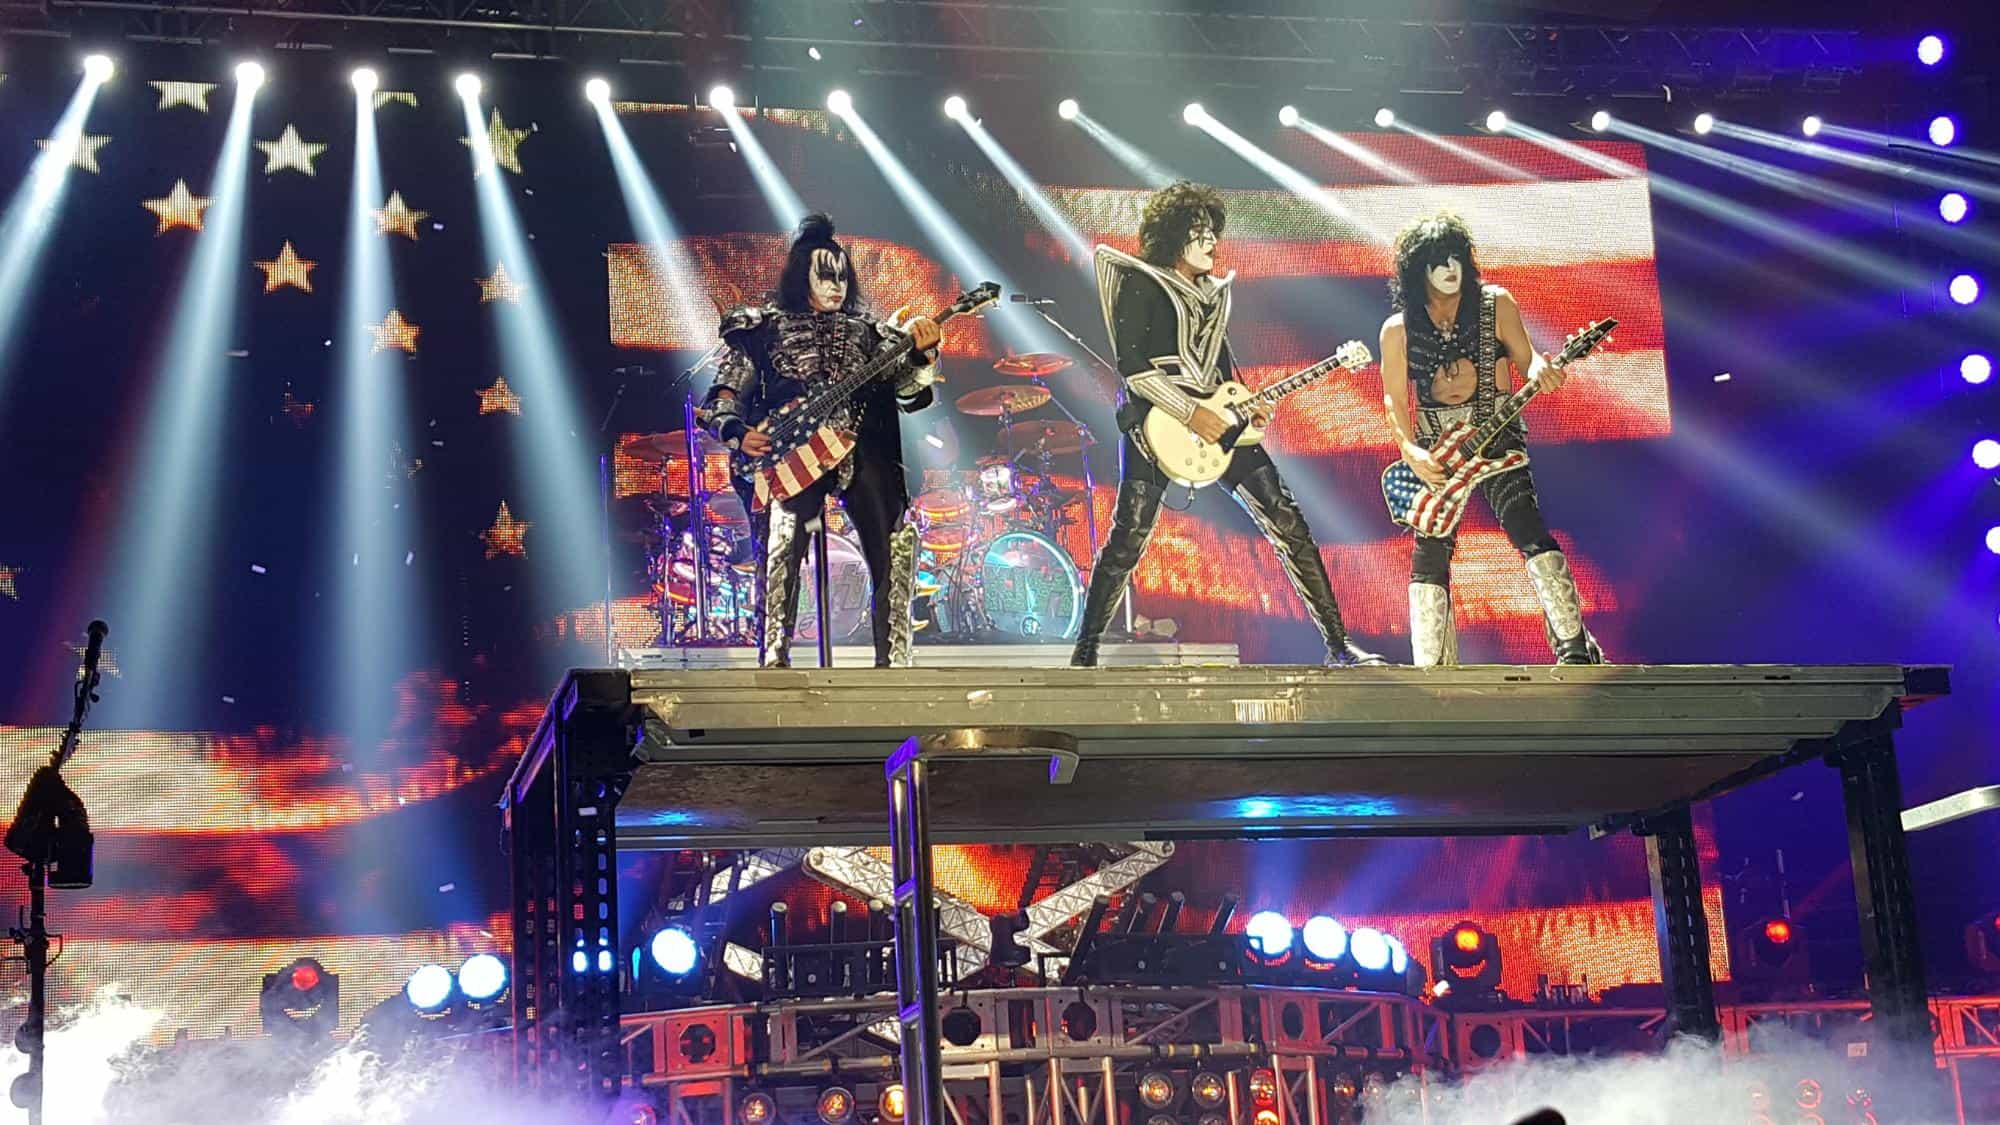 Kiss band on stage by John Pratt